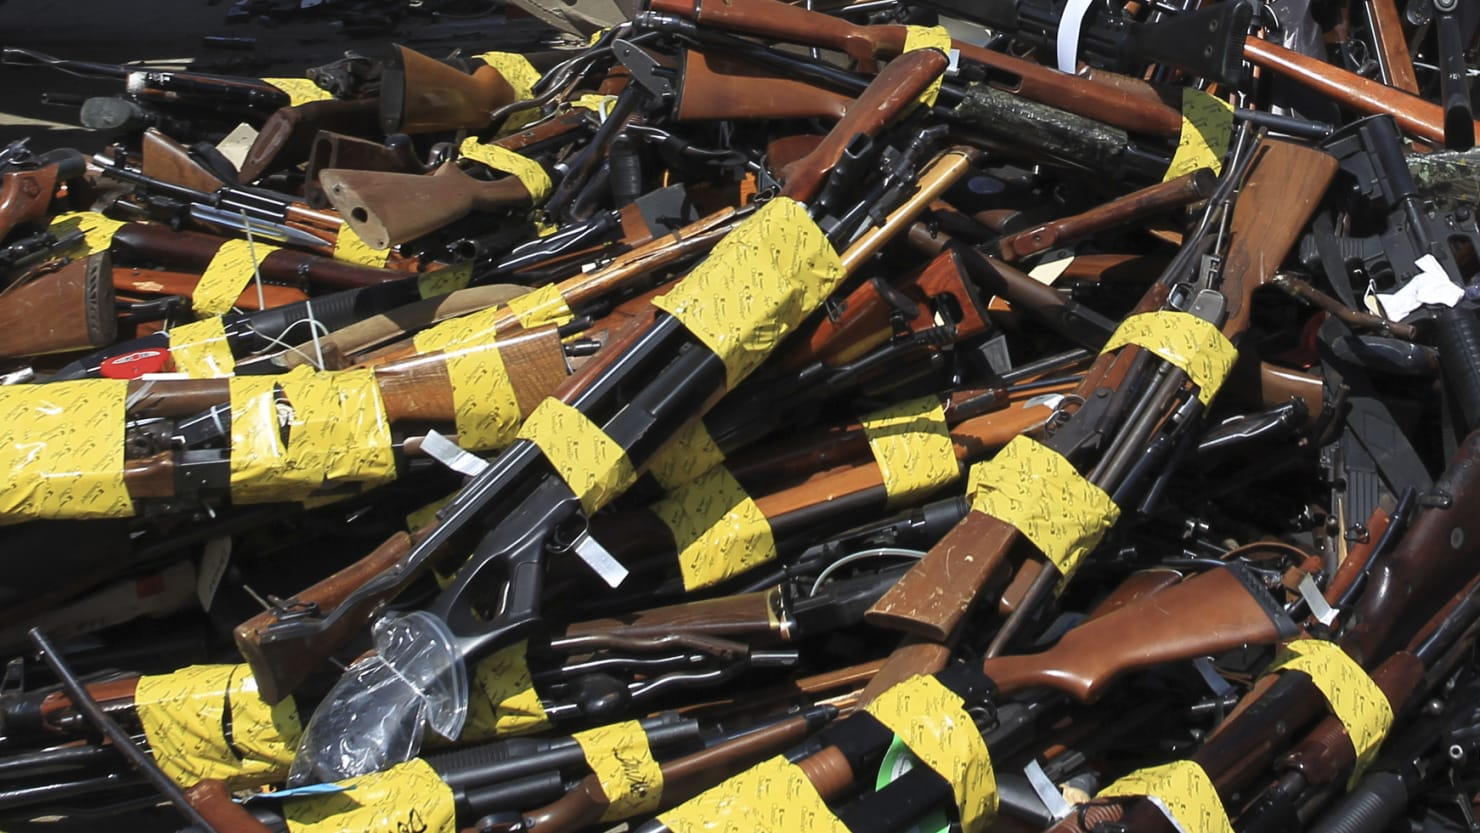 Man Arrested After Cops Find Over 1,000 Guns in Los Angeles Mansion